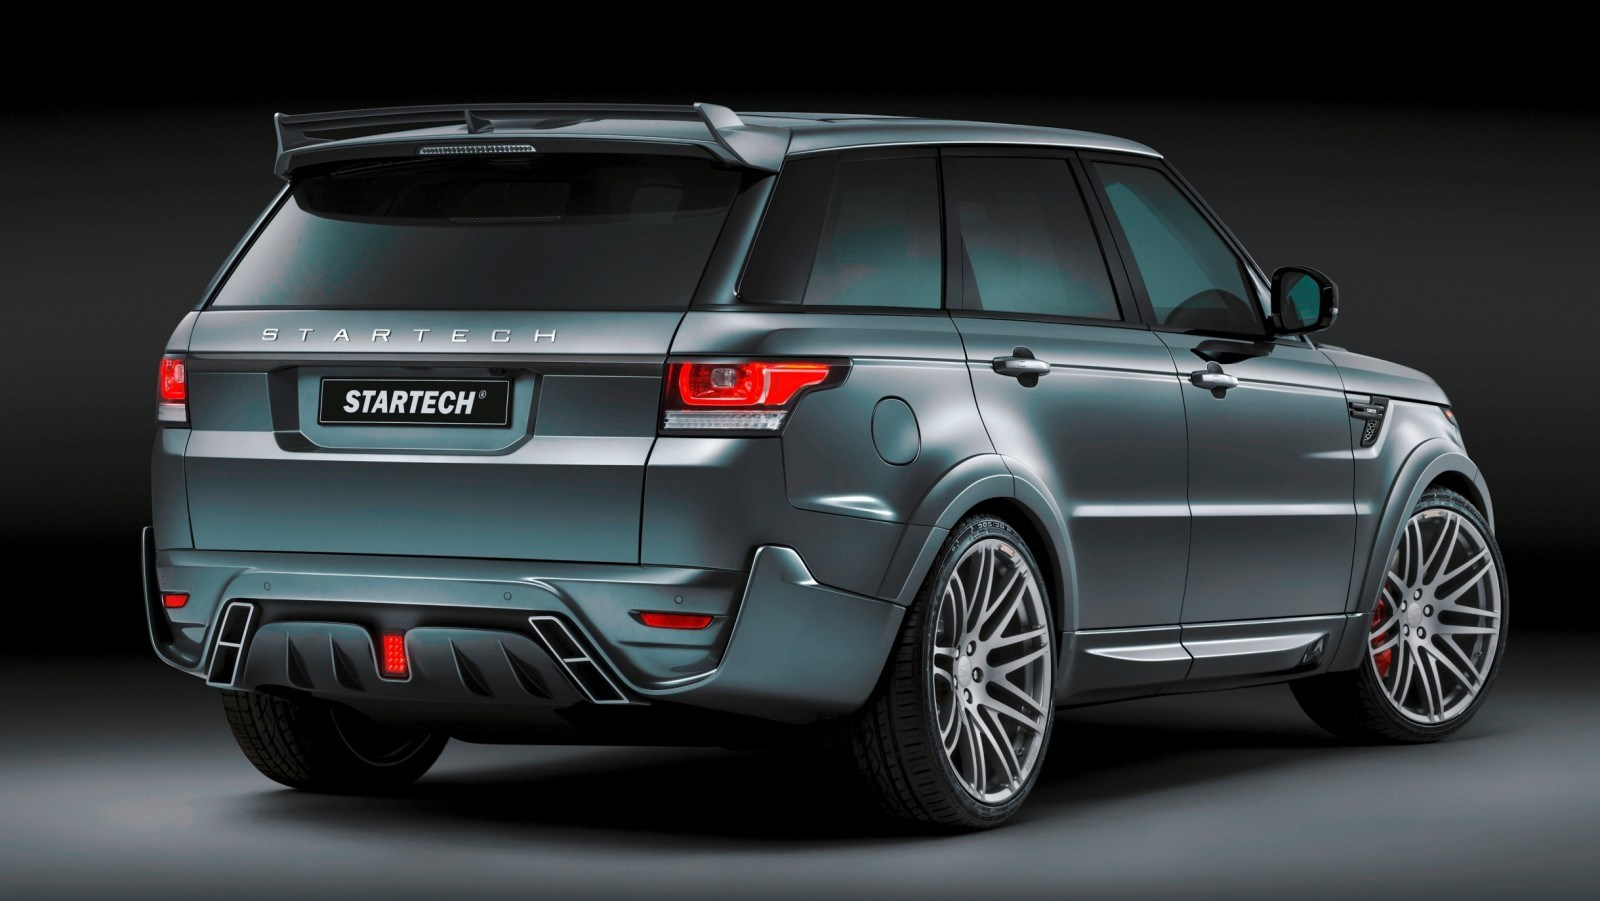 2014 Range Rover Sport STARTECH Widebody on 23-Inch Wheels Looks Amazing 2